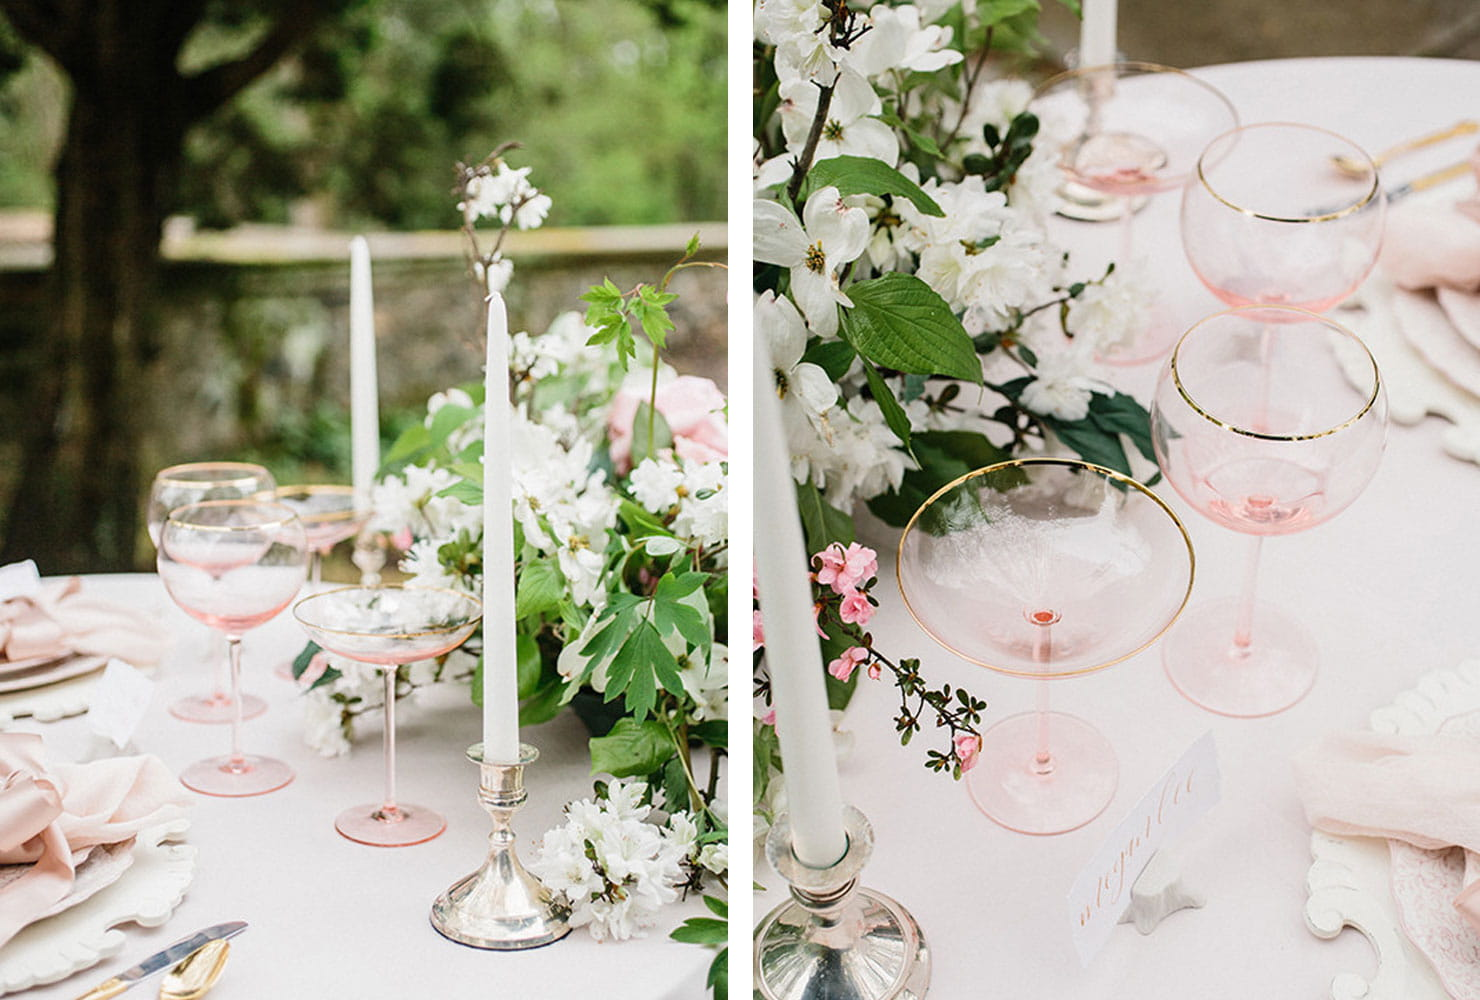 sweetheart table ideas for every season shutterfly classic garden accent your focus runner with white flowers and blush glassware accents weathered wood end outside wall clocks